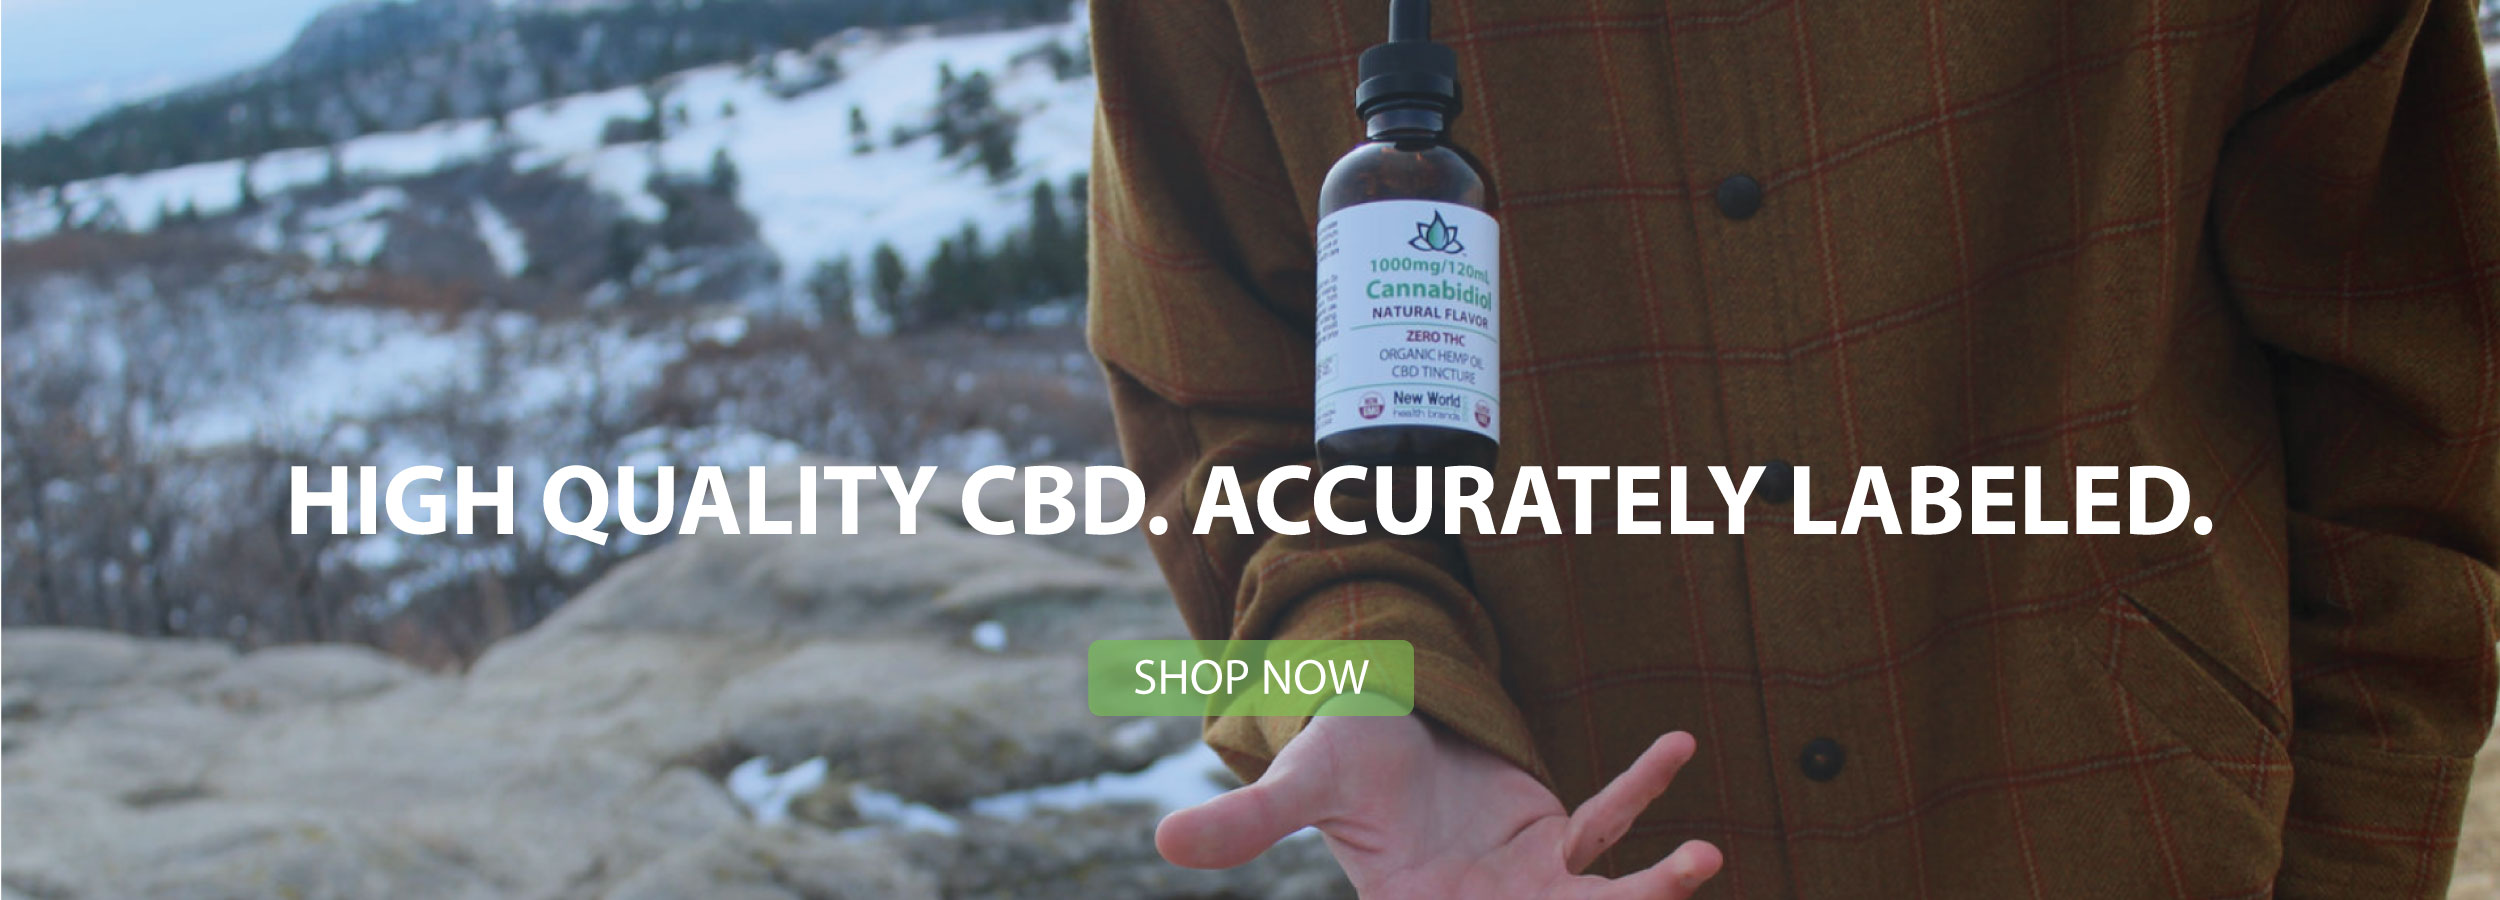 High Quality CBD. Accurately Labeled